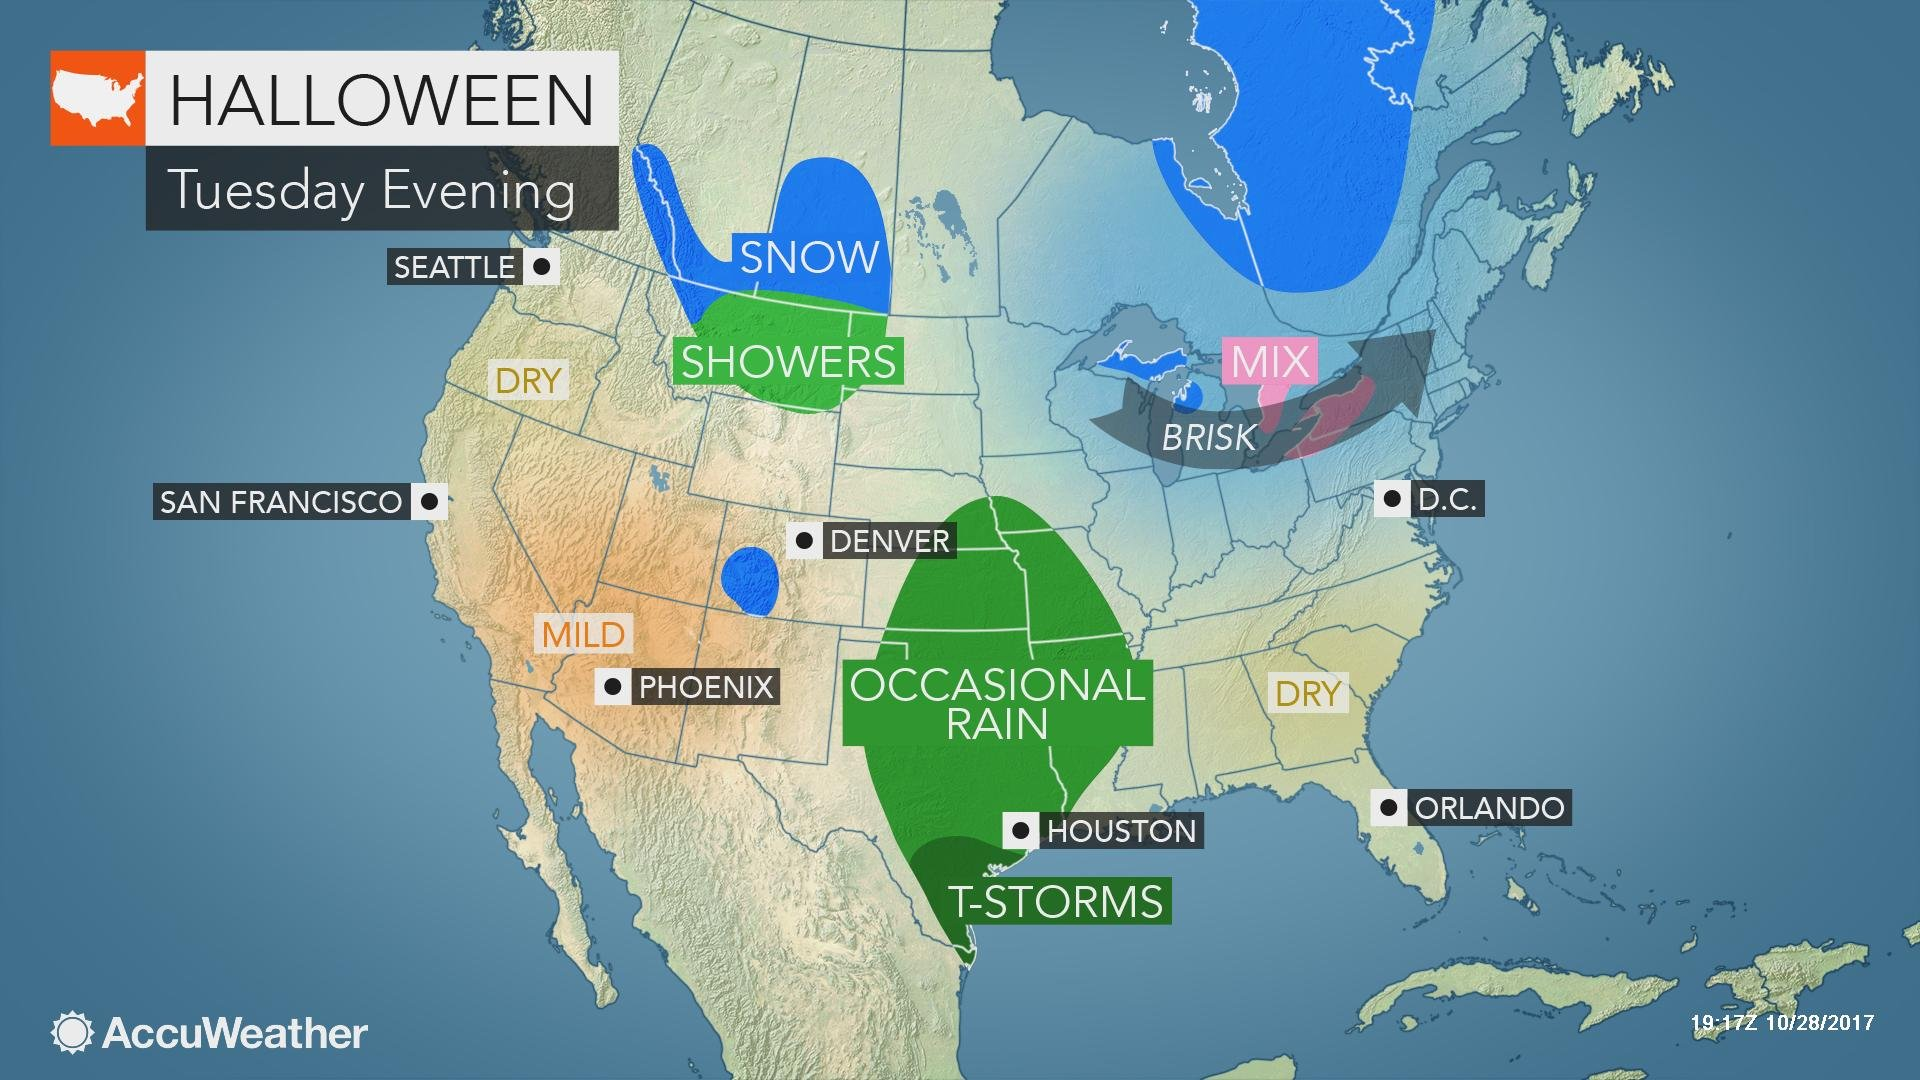 (Source: Accuweather)